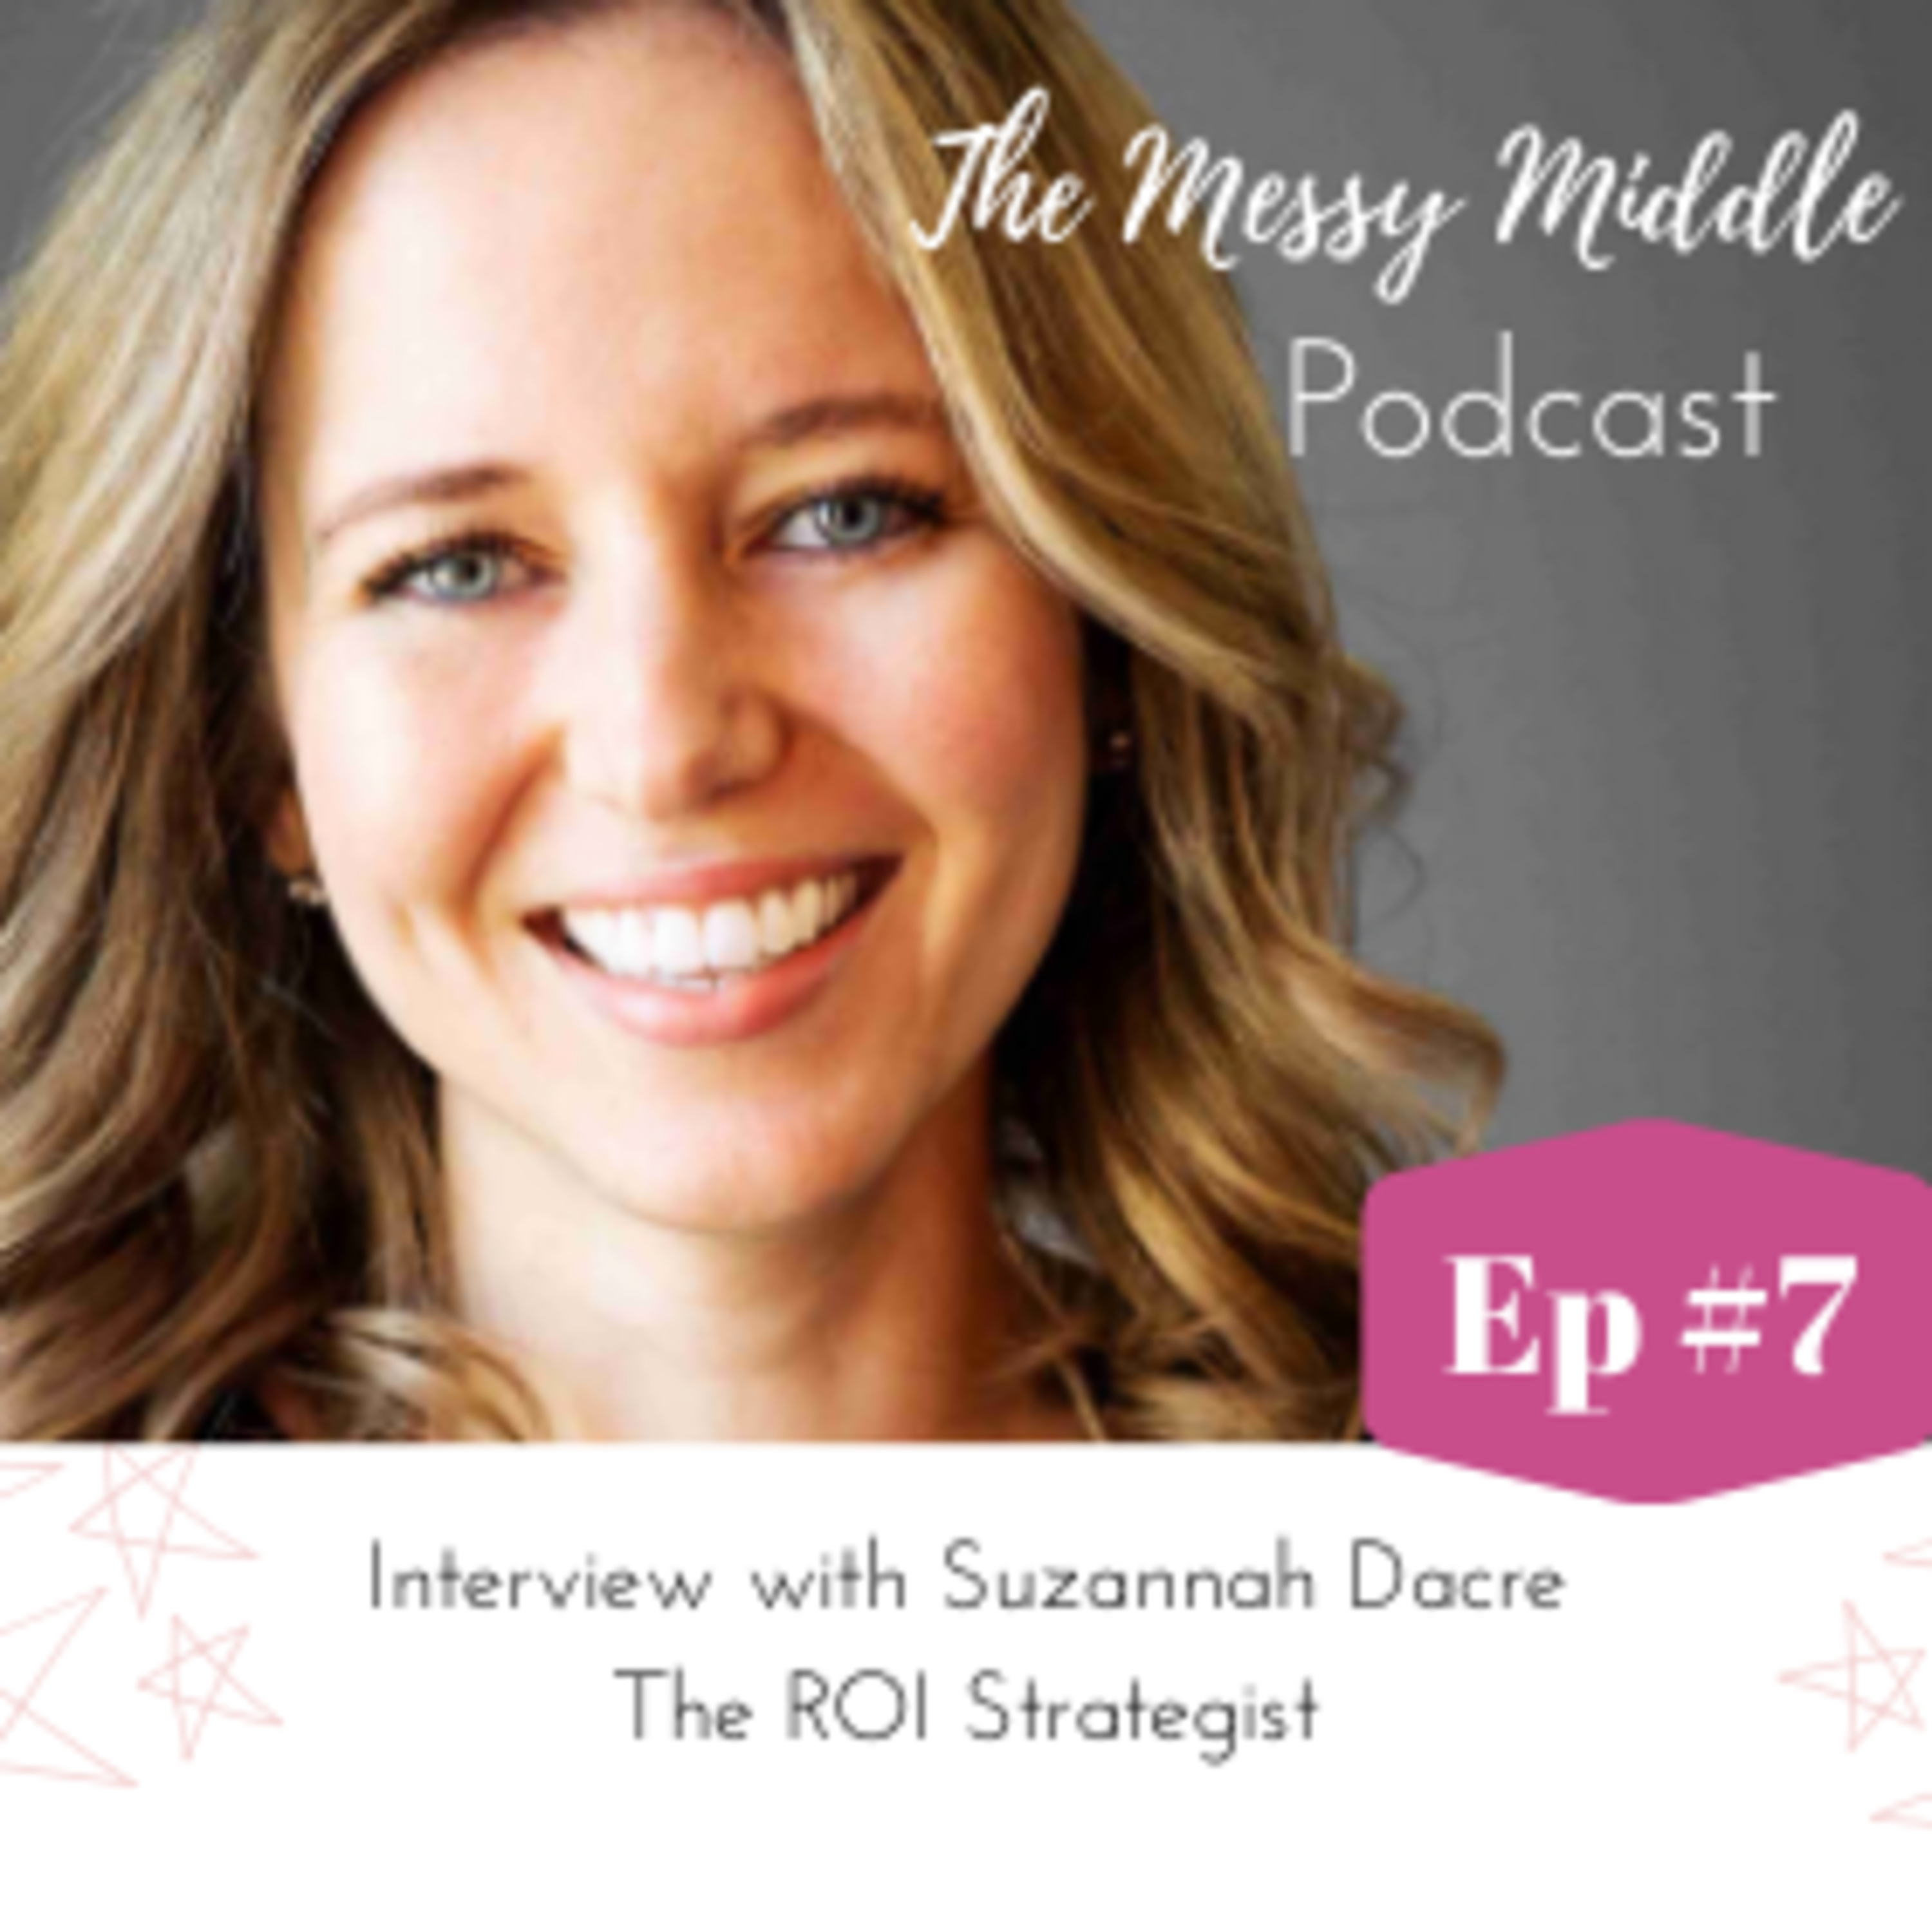 #7 Interview with Suzannah Dacre - The ROI Strategist